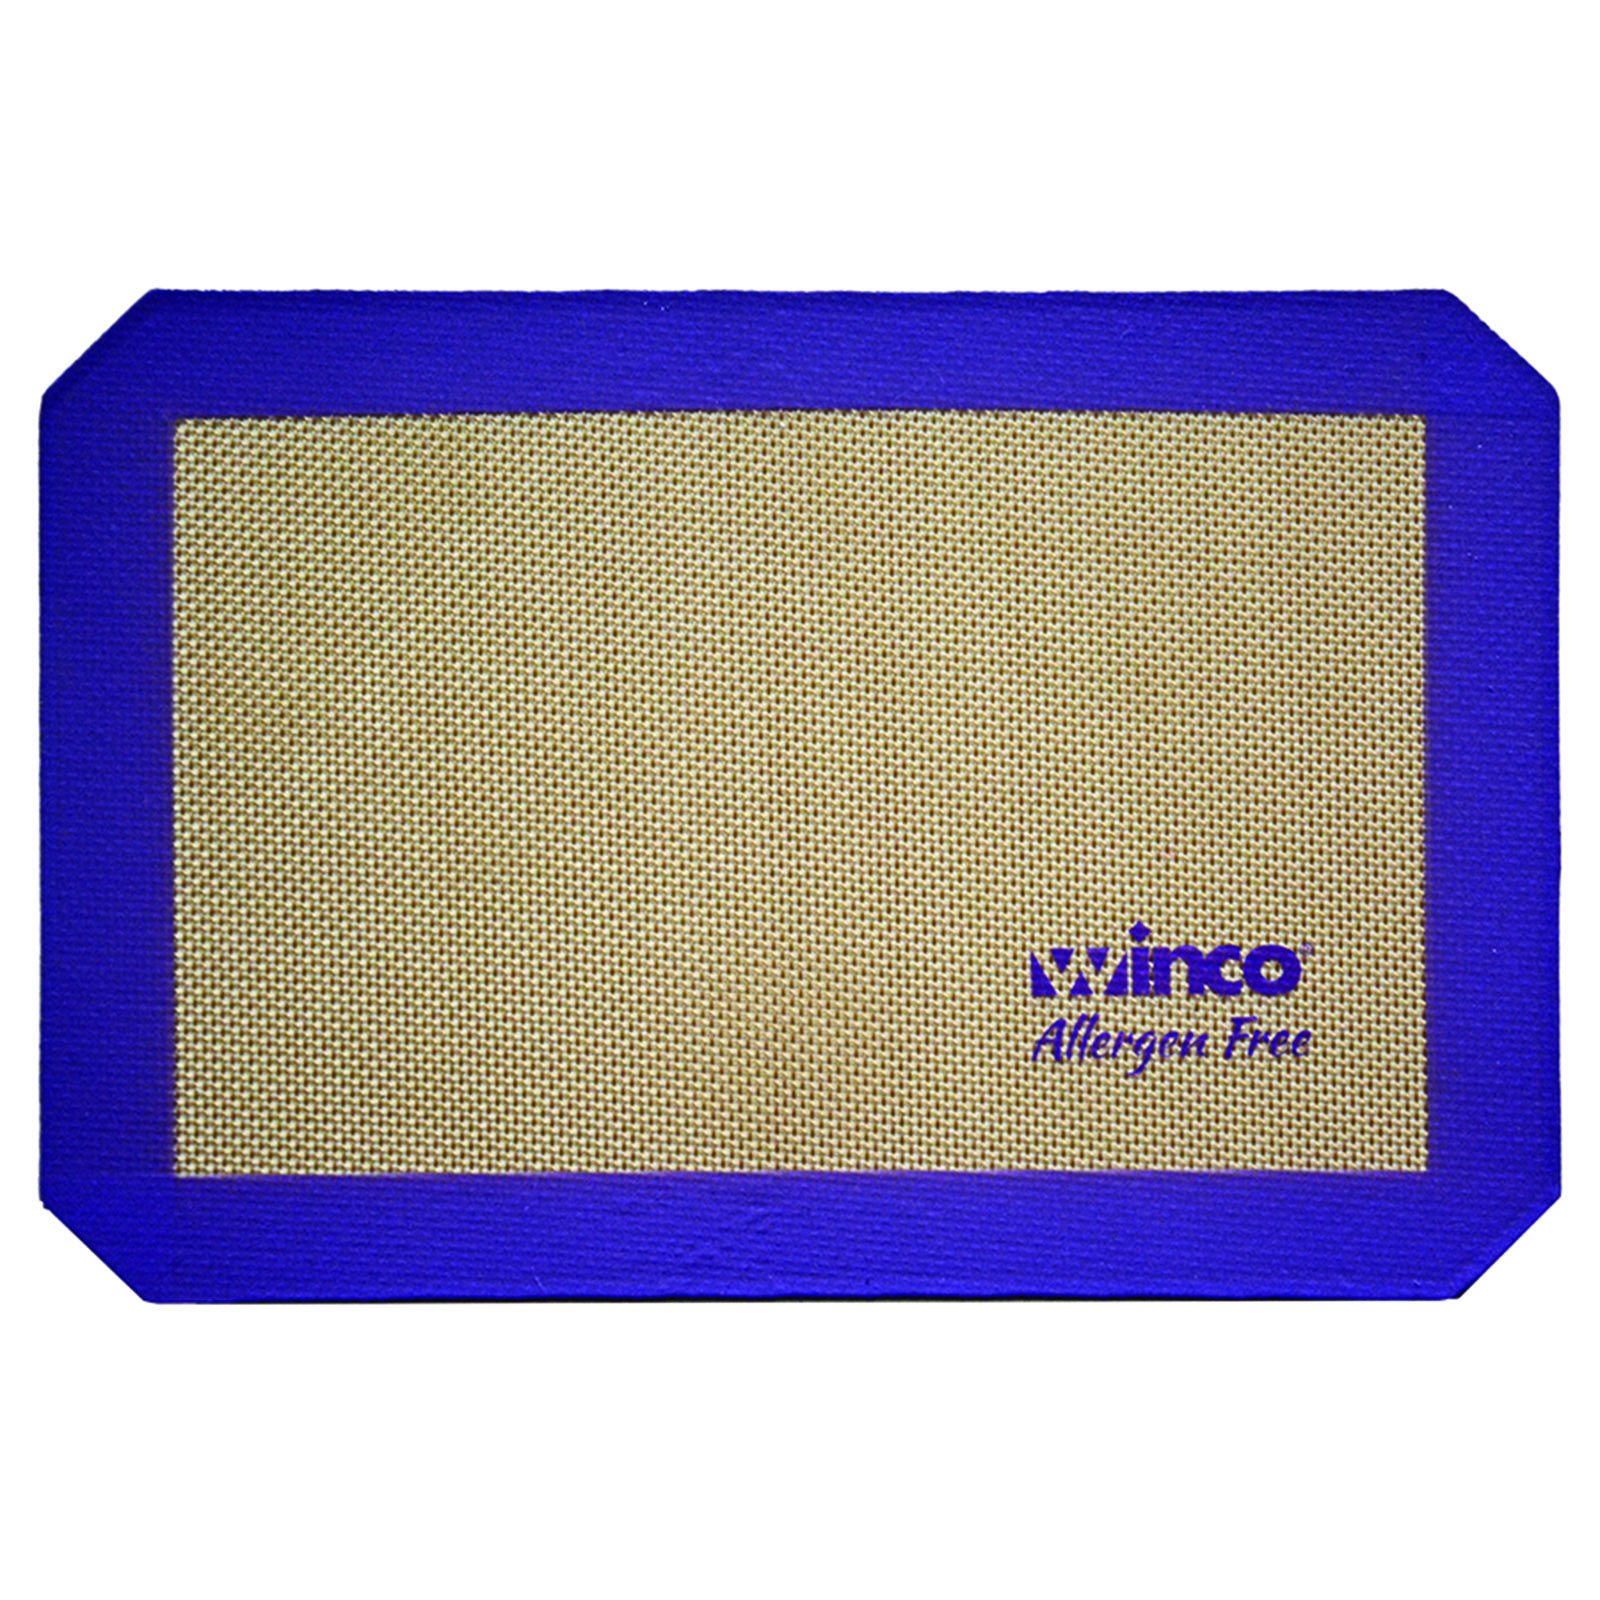 Winco SBS-11PP baking mat